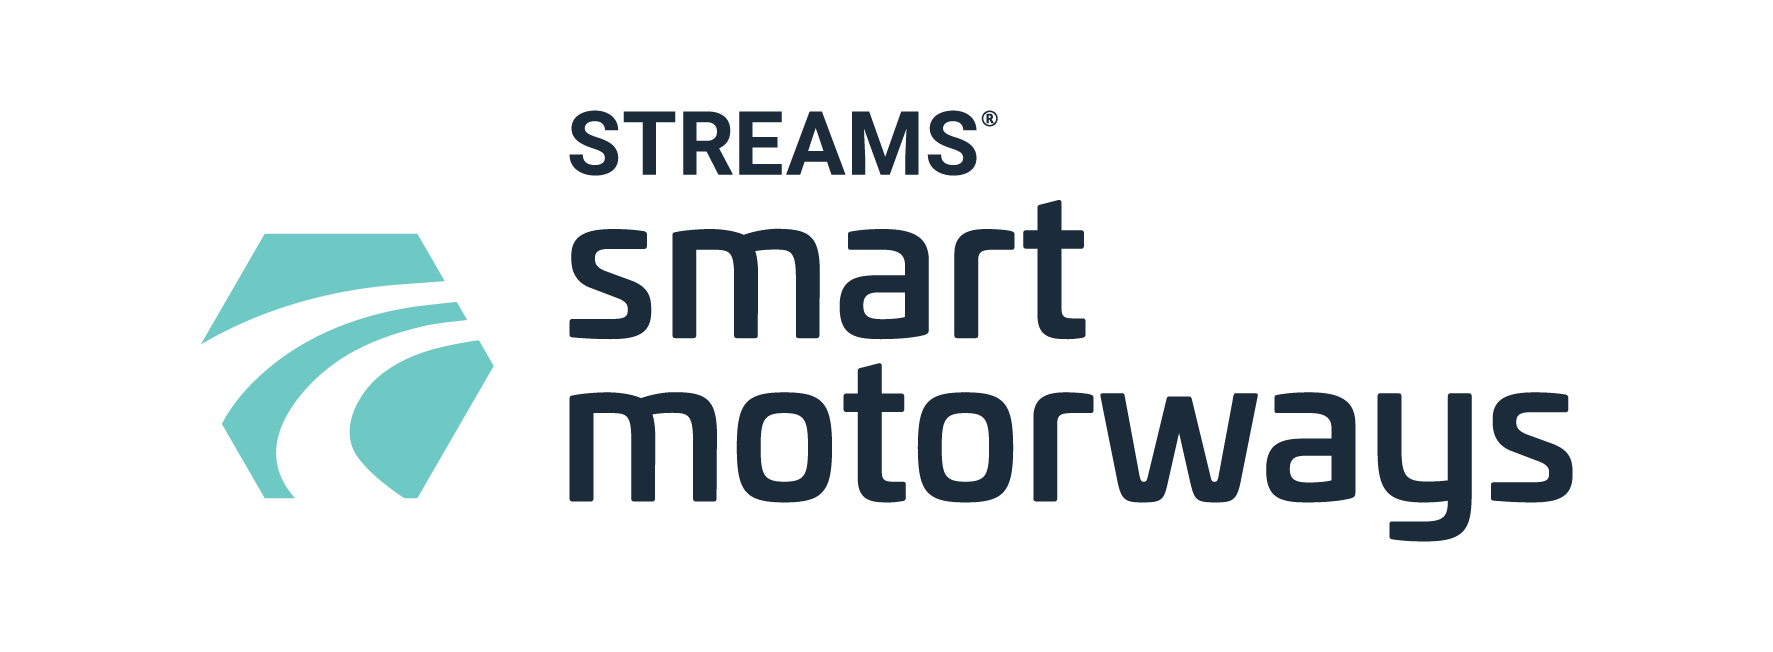 STREAMS® Smart Motorway_LOGO_RGB___master